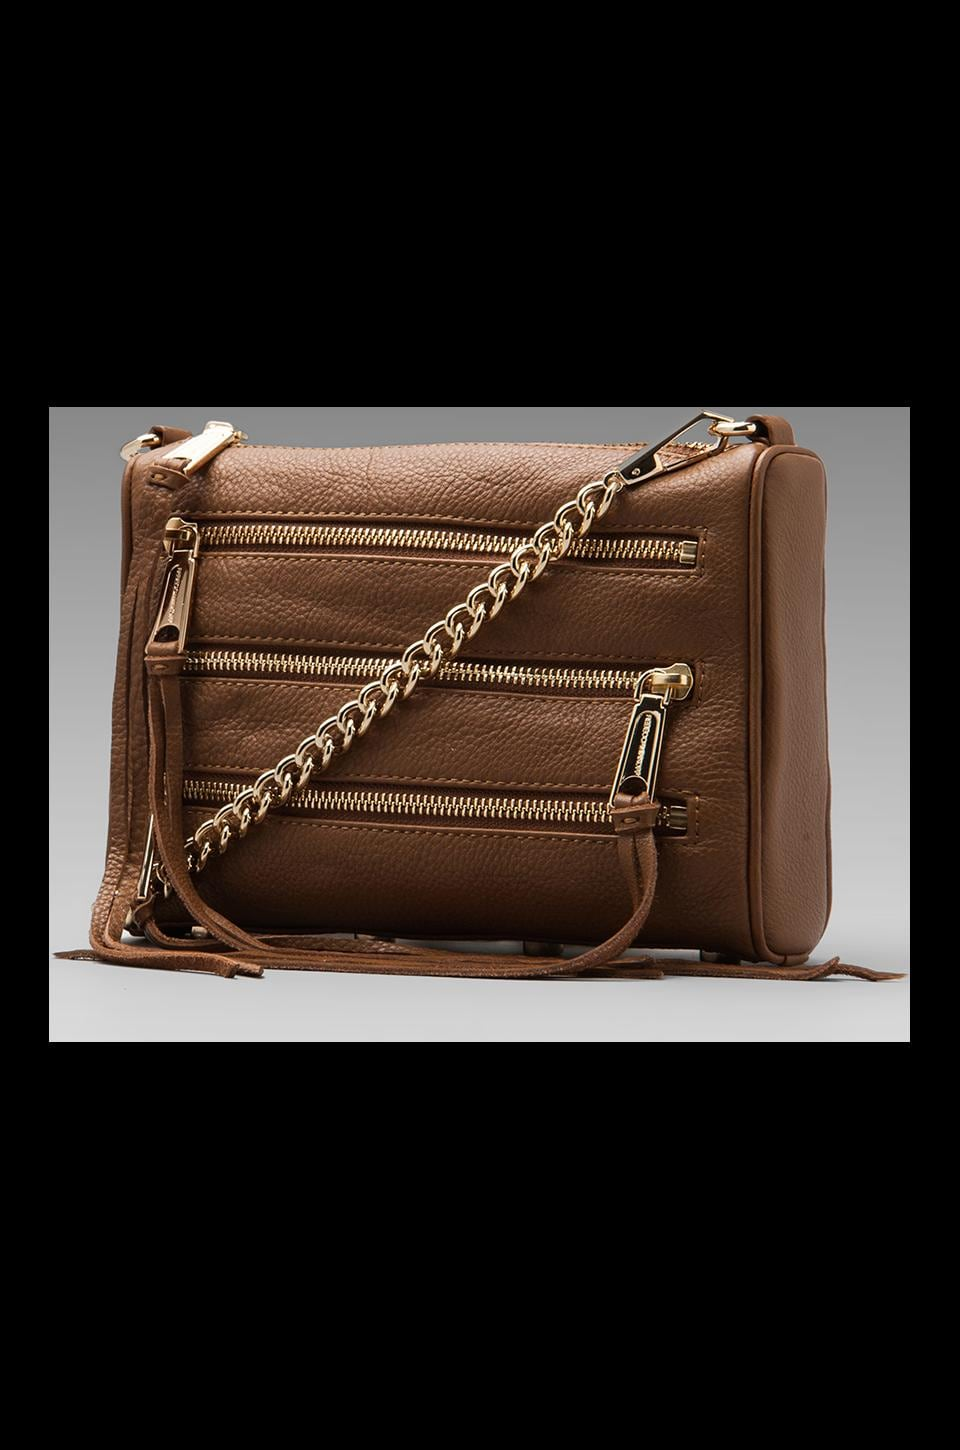 Rebecca Minkoff Mini 5 Zip Clutch in Fatigue